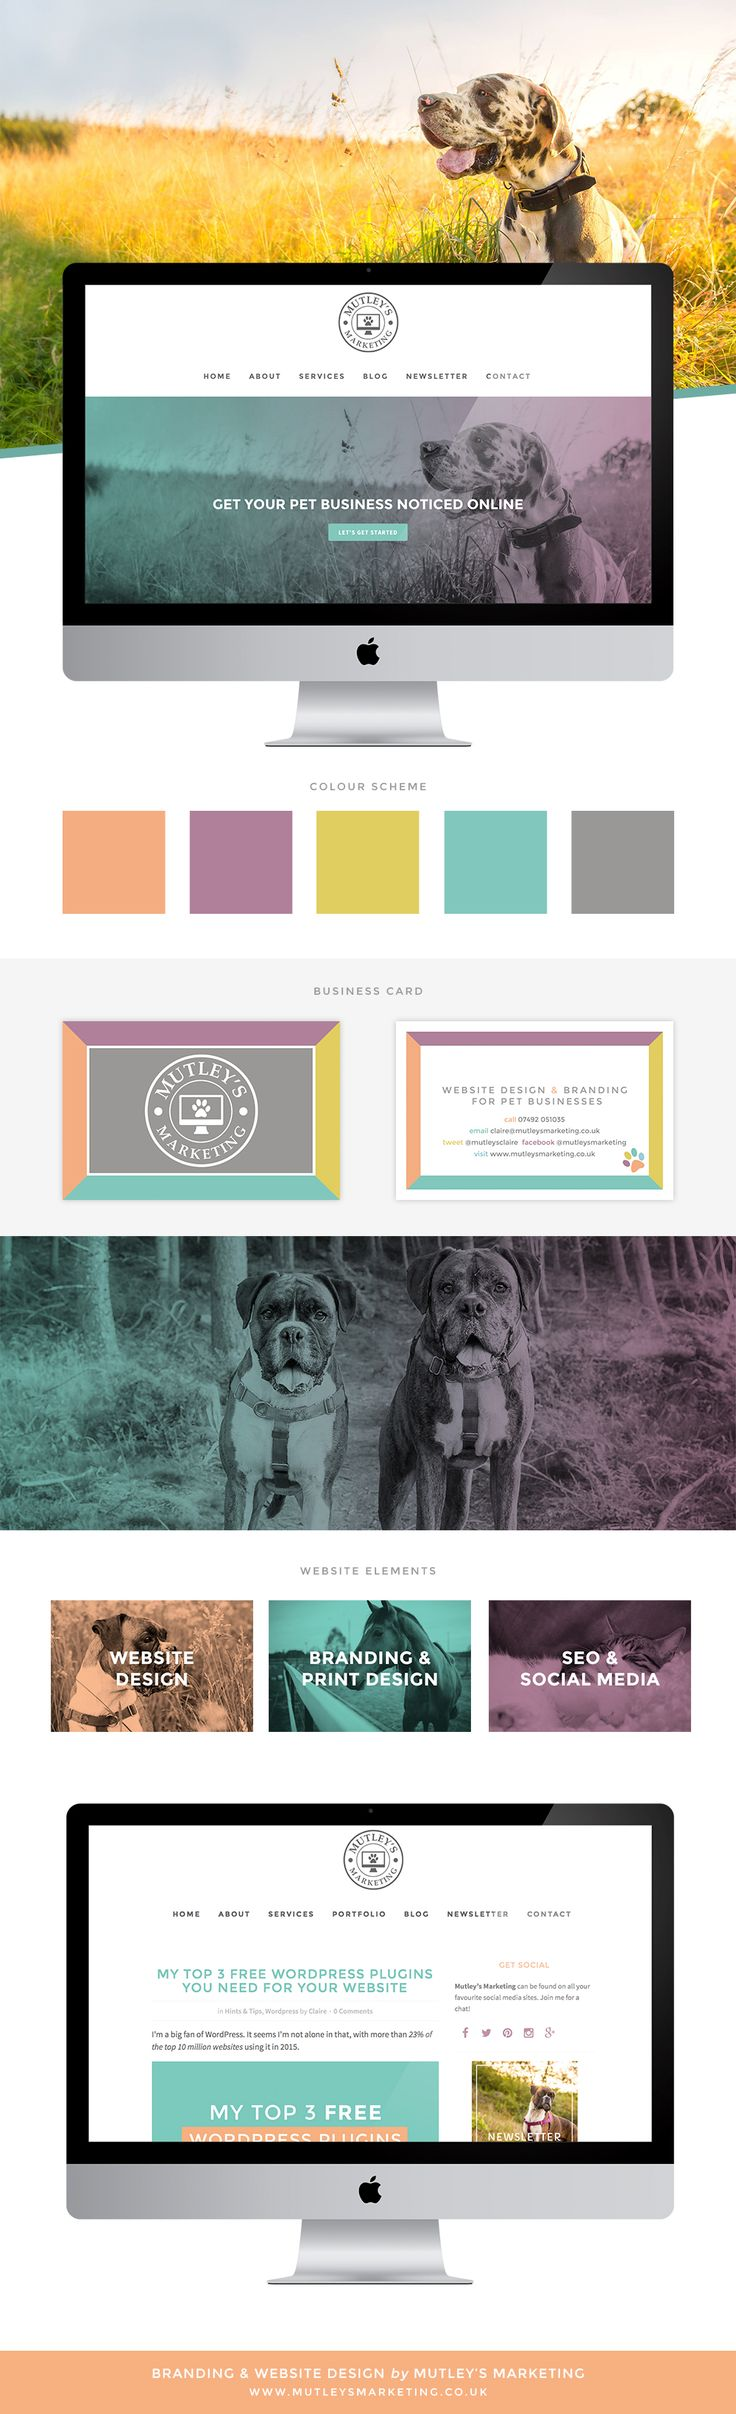 branding-and-website-design-mutleys-marketing